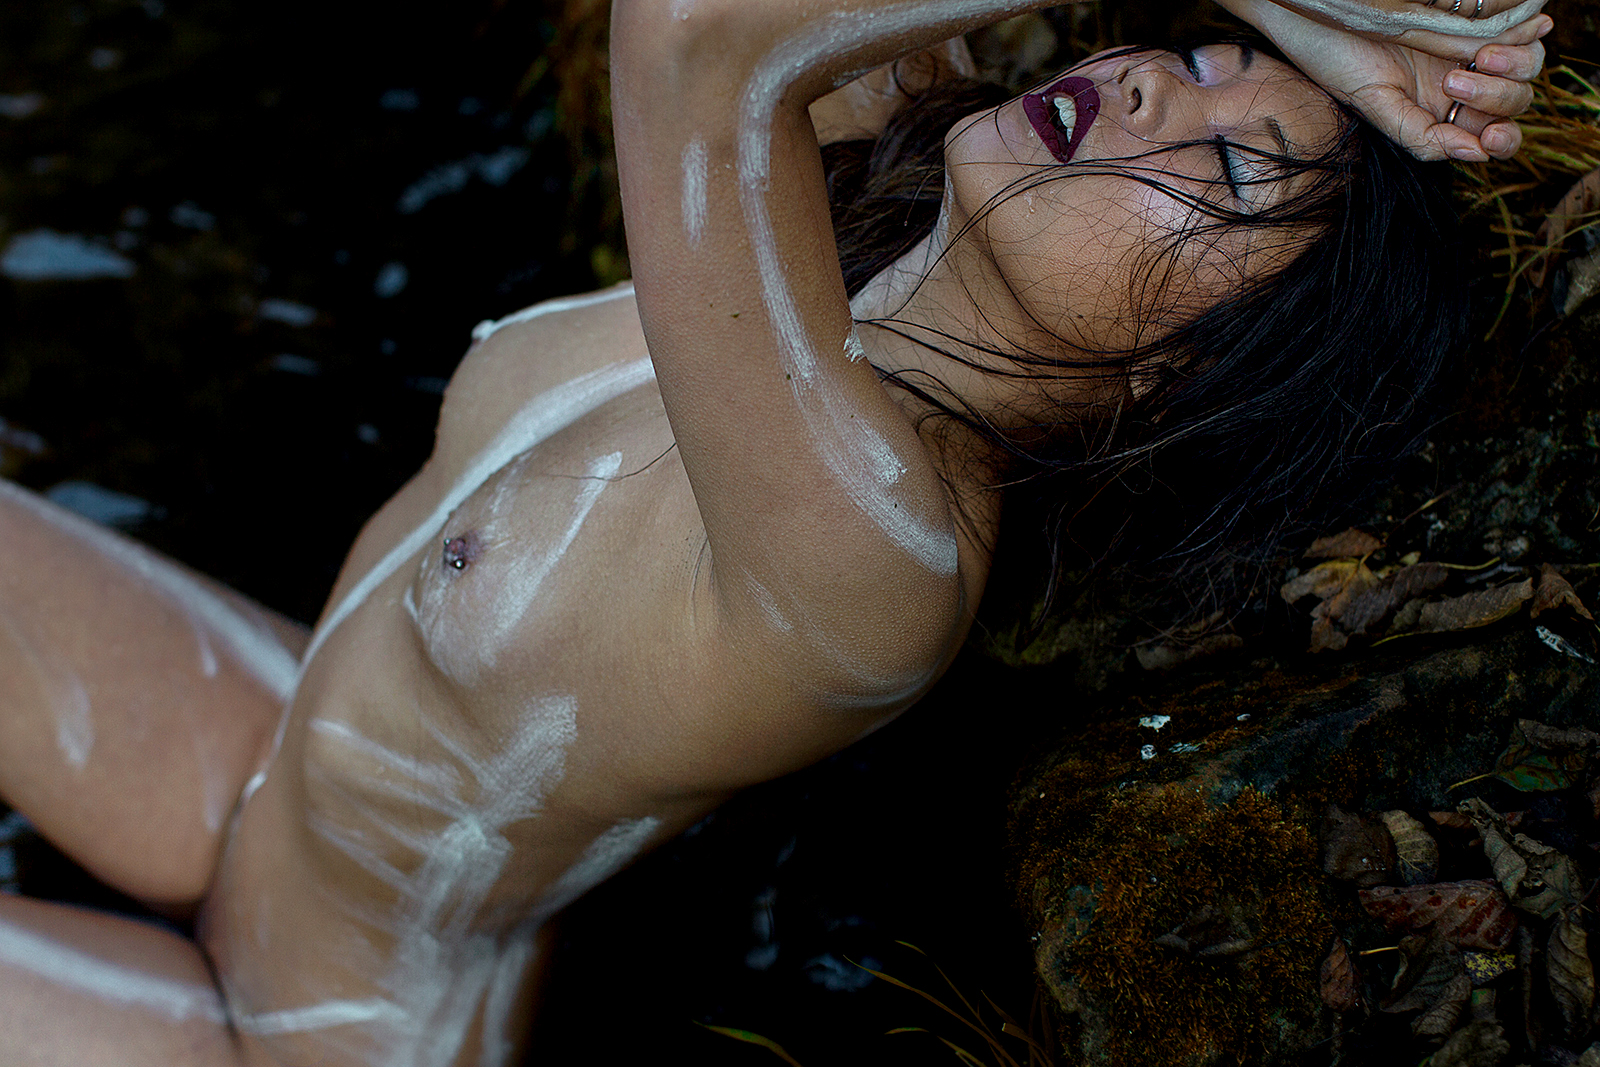 Waterfall Stories Women  photography nudes nude art nude lionsmag lions magazine Diana Neege   // lionsmag.com - premium nude photography magazine